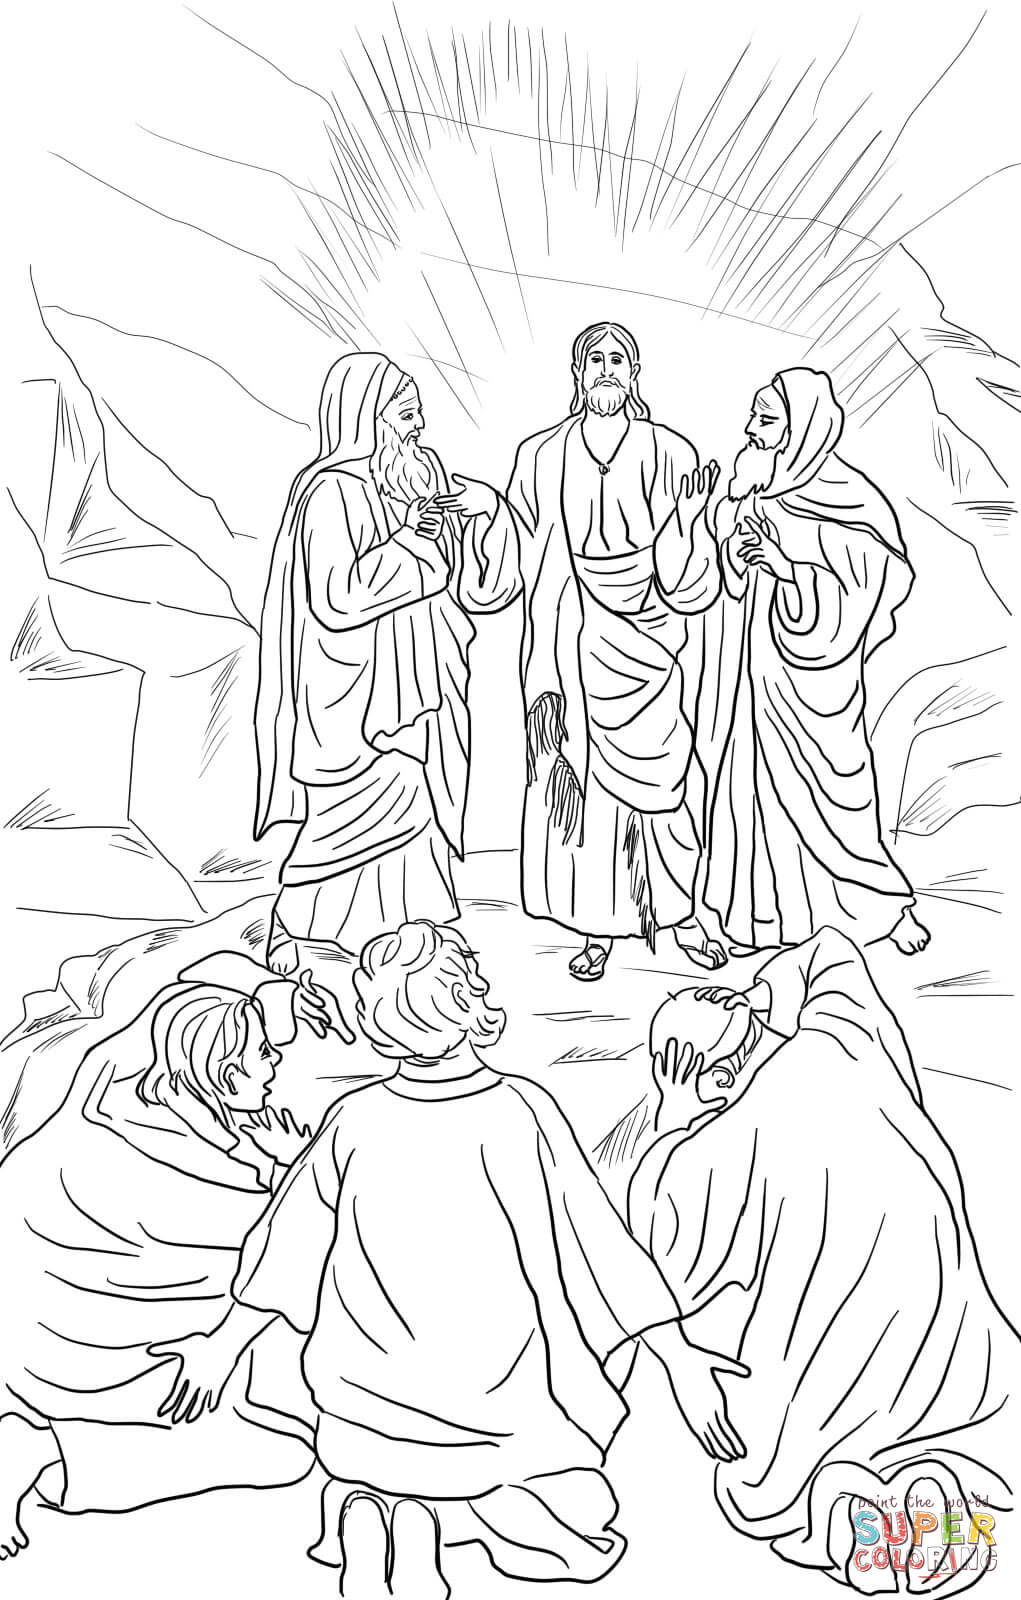 Jesus Transfiguration Coloring Page Free Printable Coloring Pages